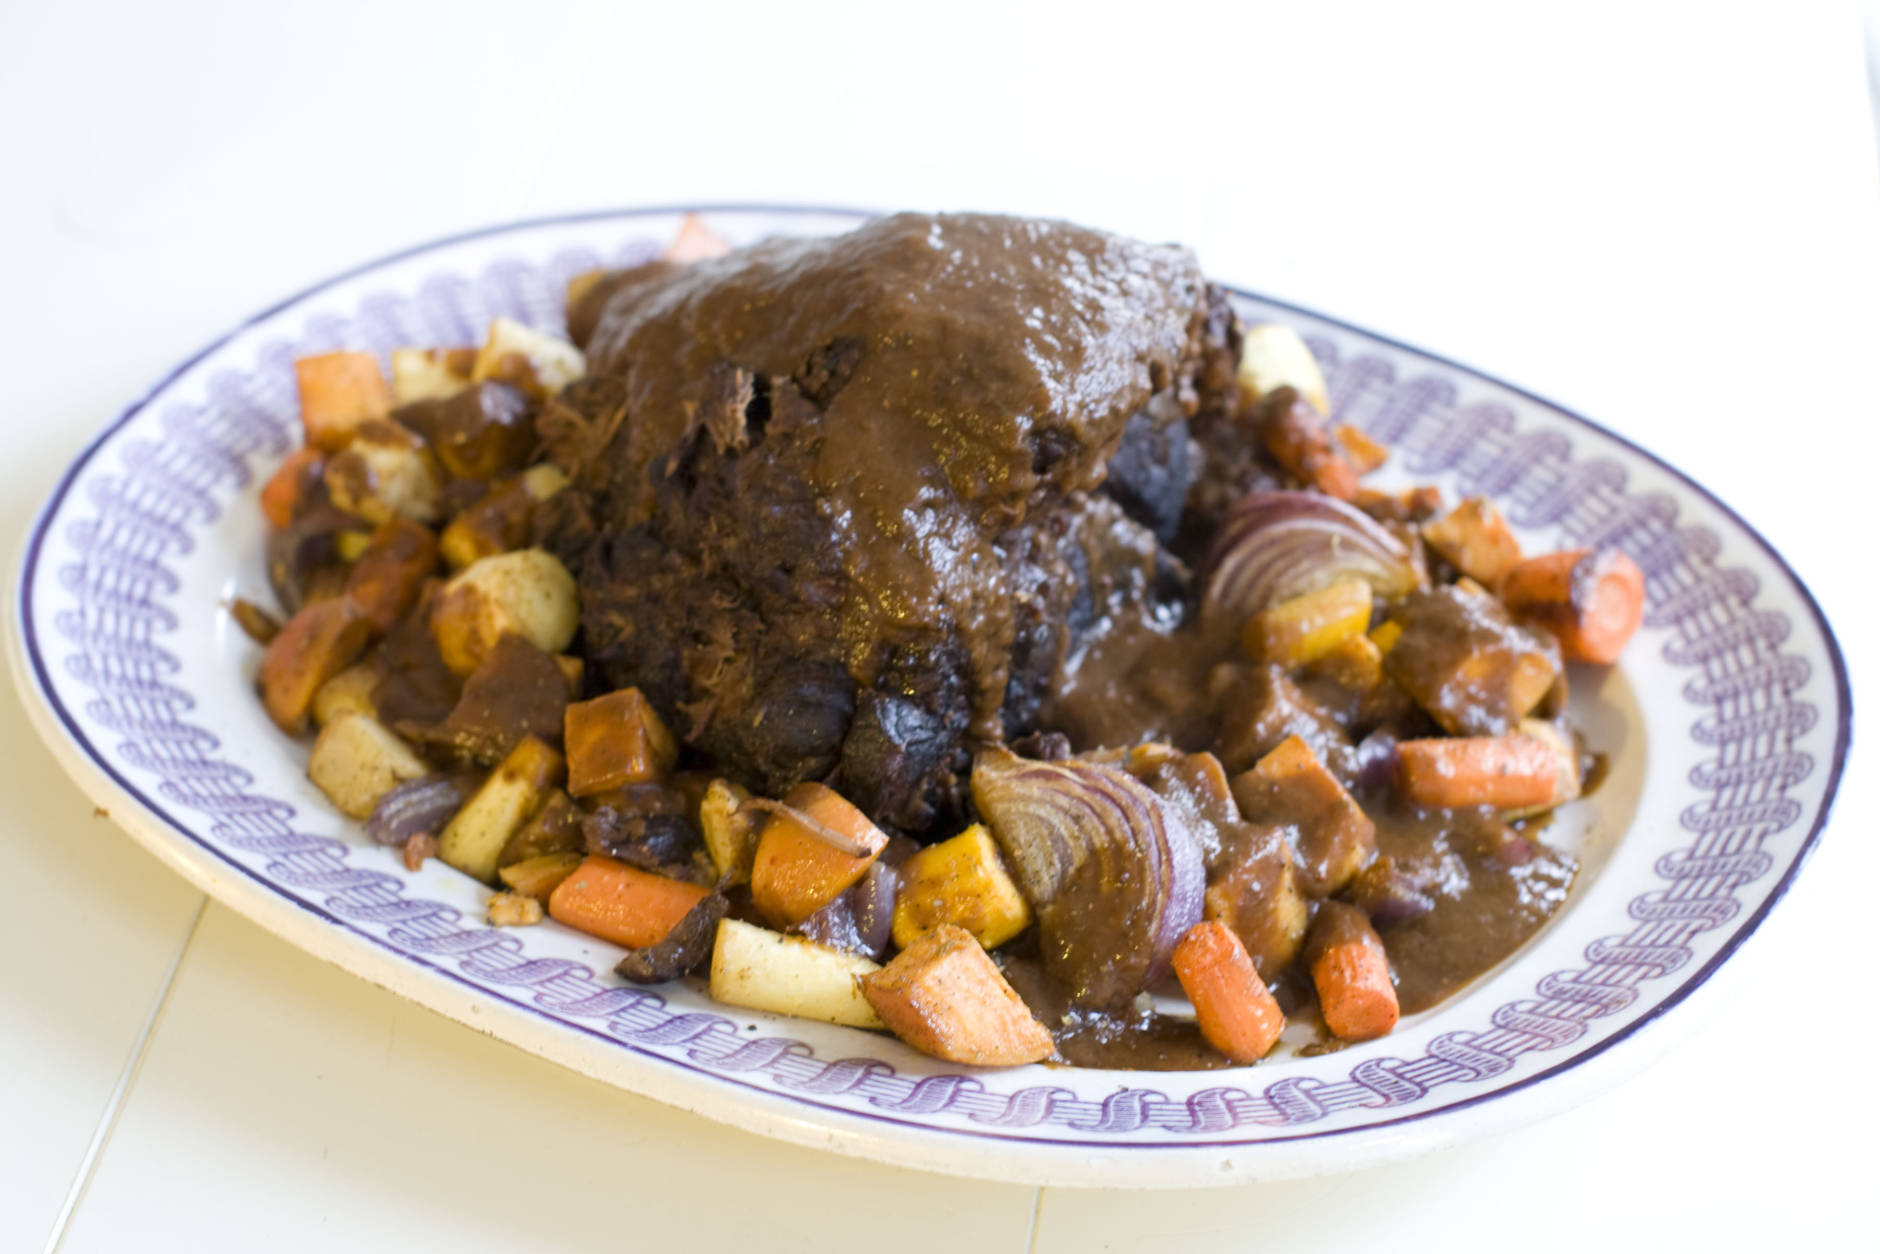 This Nov. 11, 2013 photo shows holiday pot roast with spiced root vegetables in Concord, N.H. This recipe is designed to give maximum flavor with minimum labor. (AP Photo/Matthew Mead)